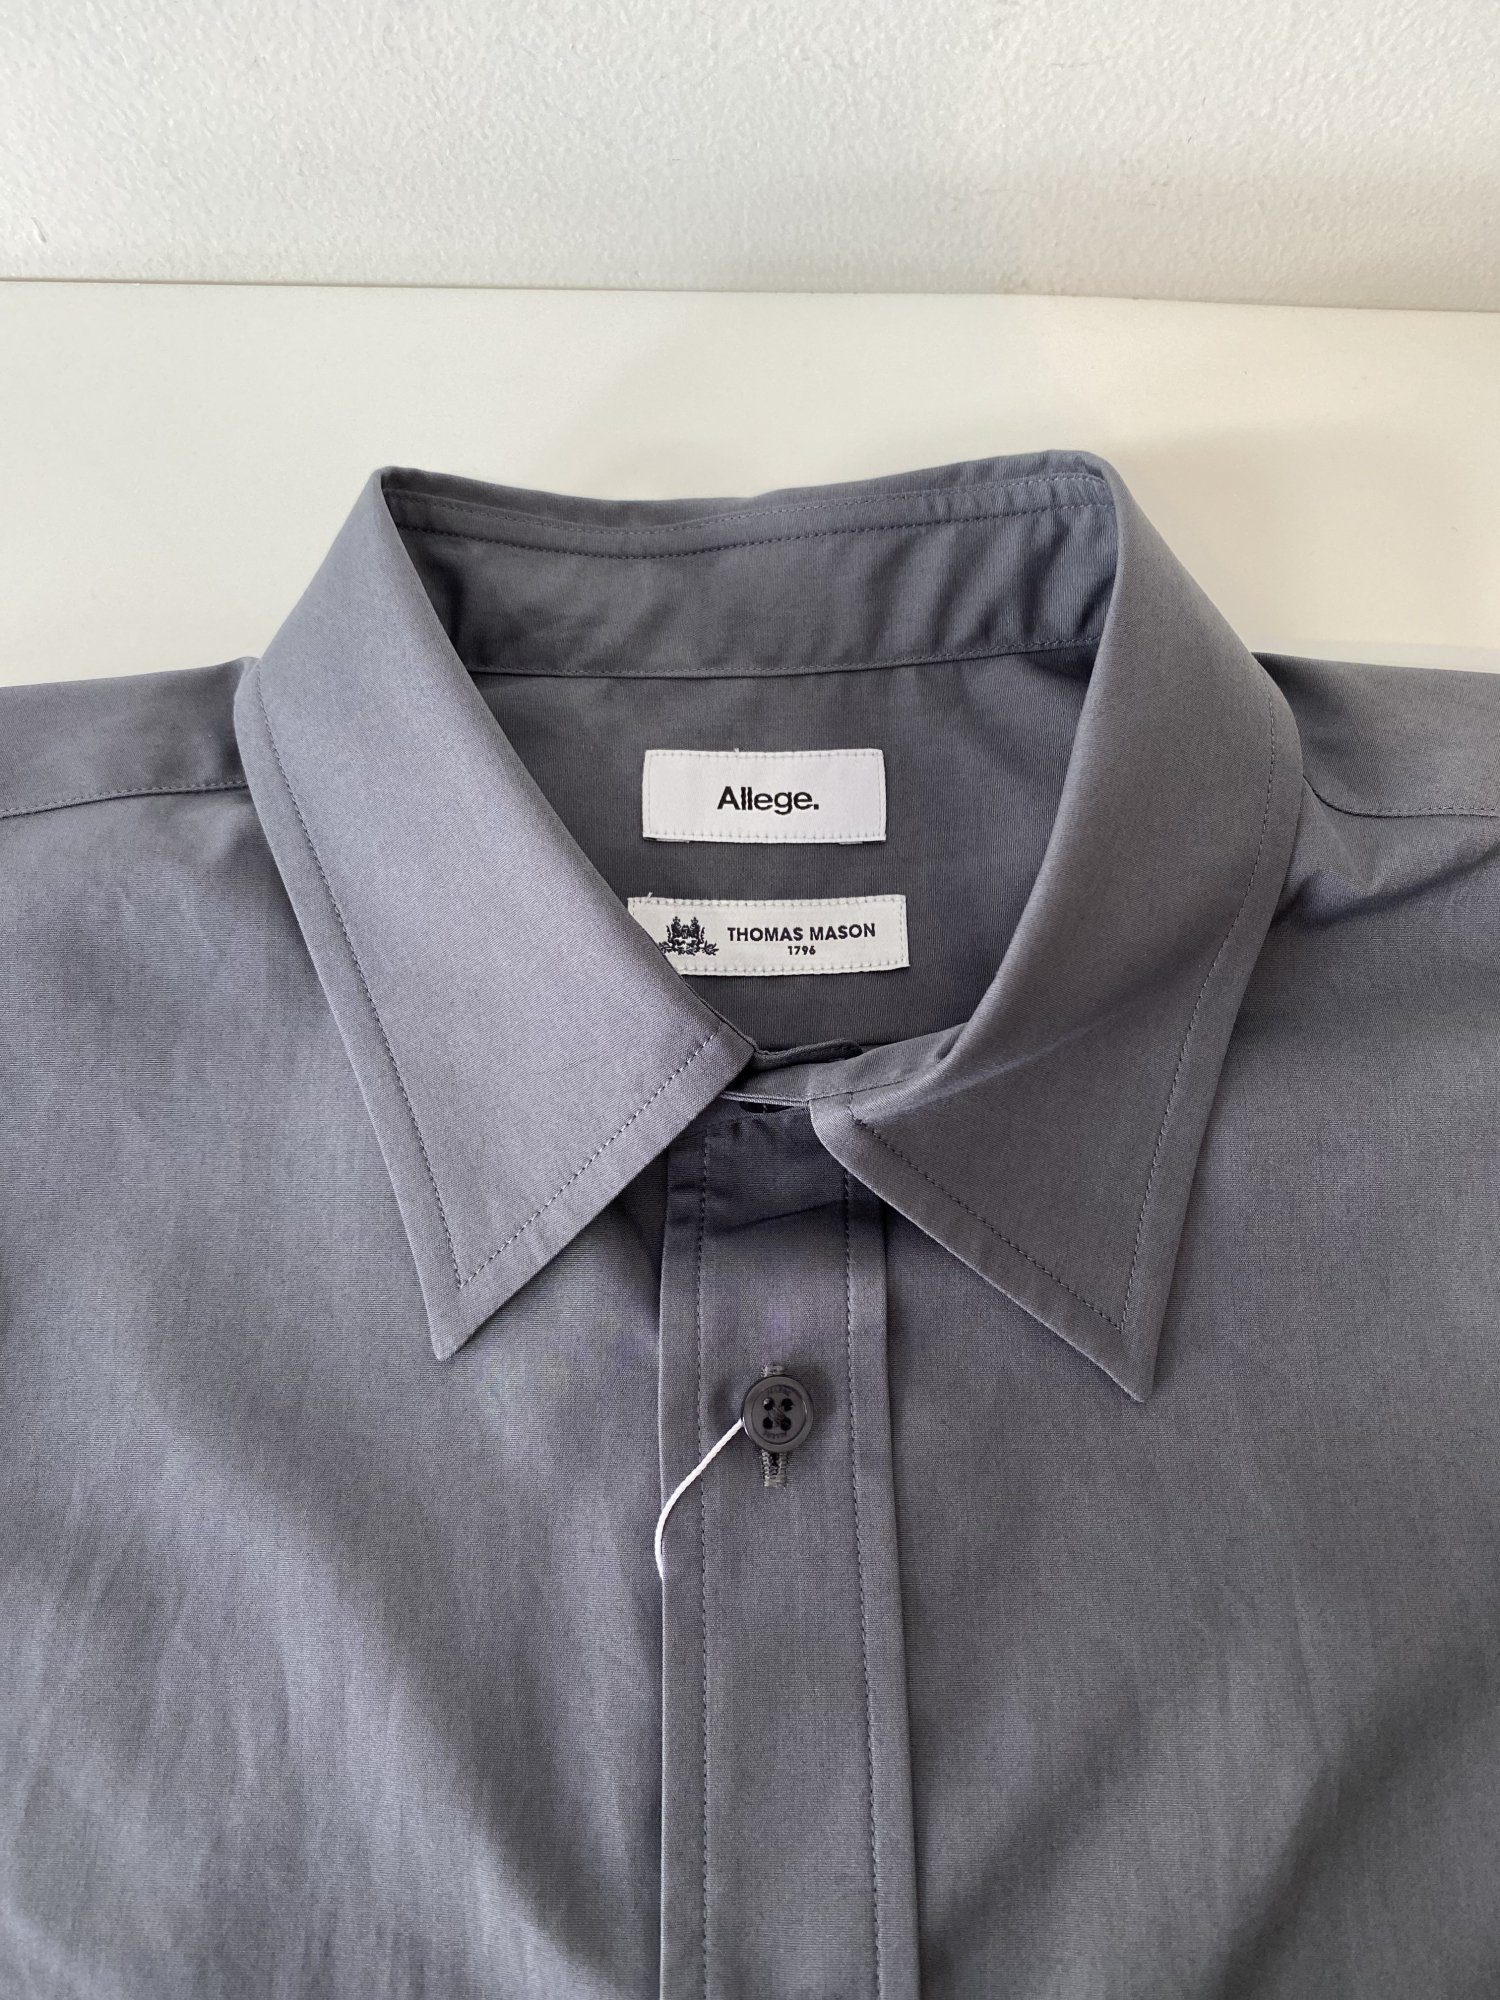 ALLEGE<br />Standard Shirt / GRAY<img class='new_mark_img2' src='https://img.shop-pro.jp/img/new/icons14.gif' style='border:none;display:inline;margin:0px;padding:0px;width:auto;' />